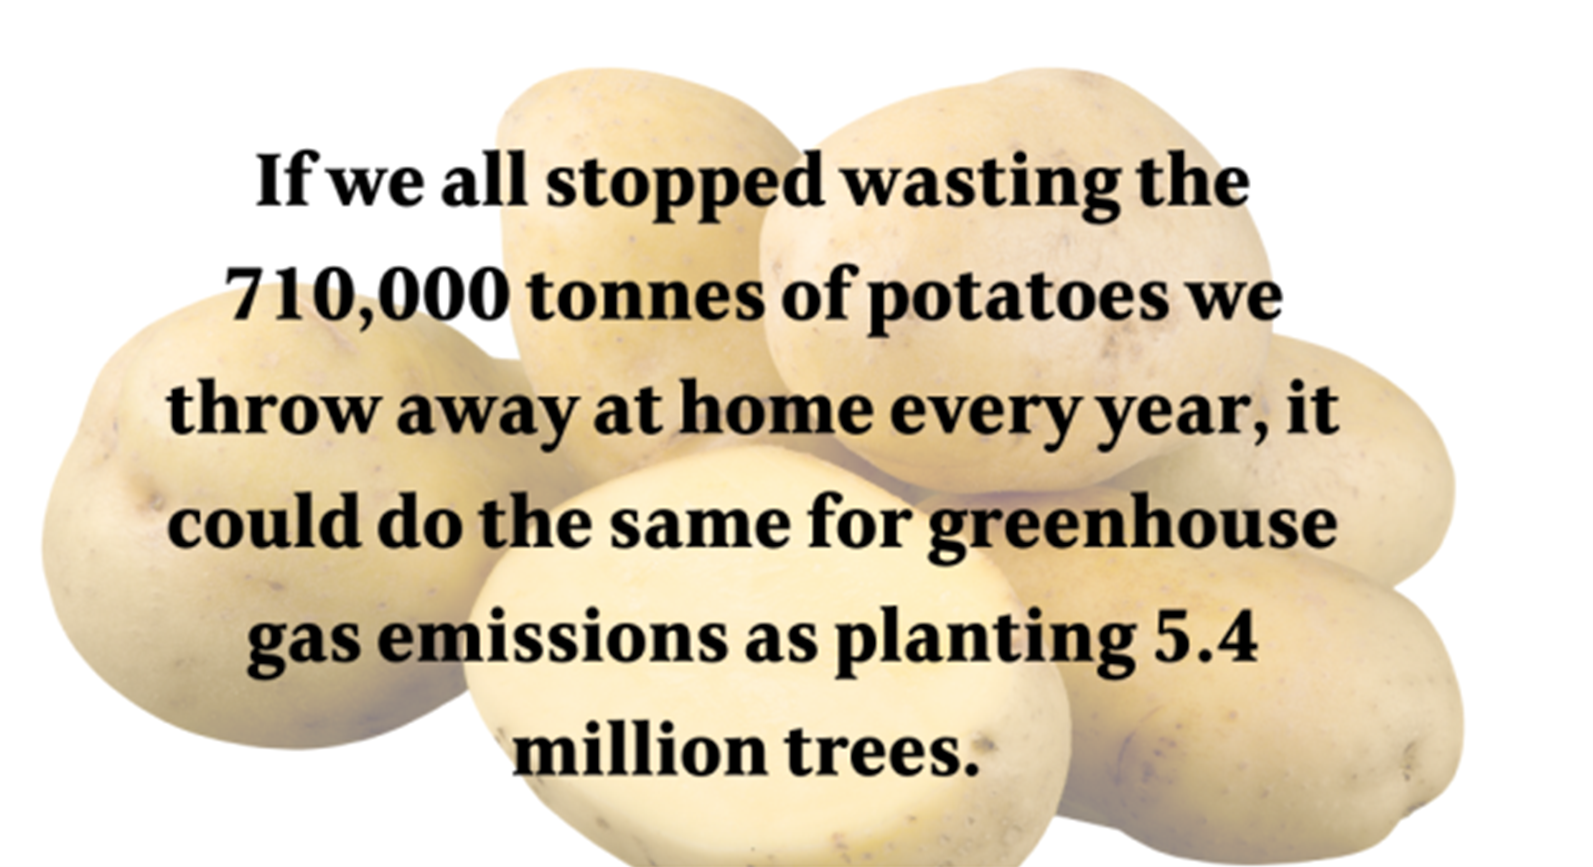 Infographic about the impact of wasting potatoes